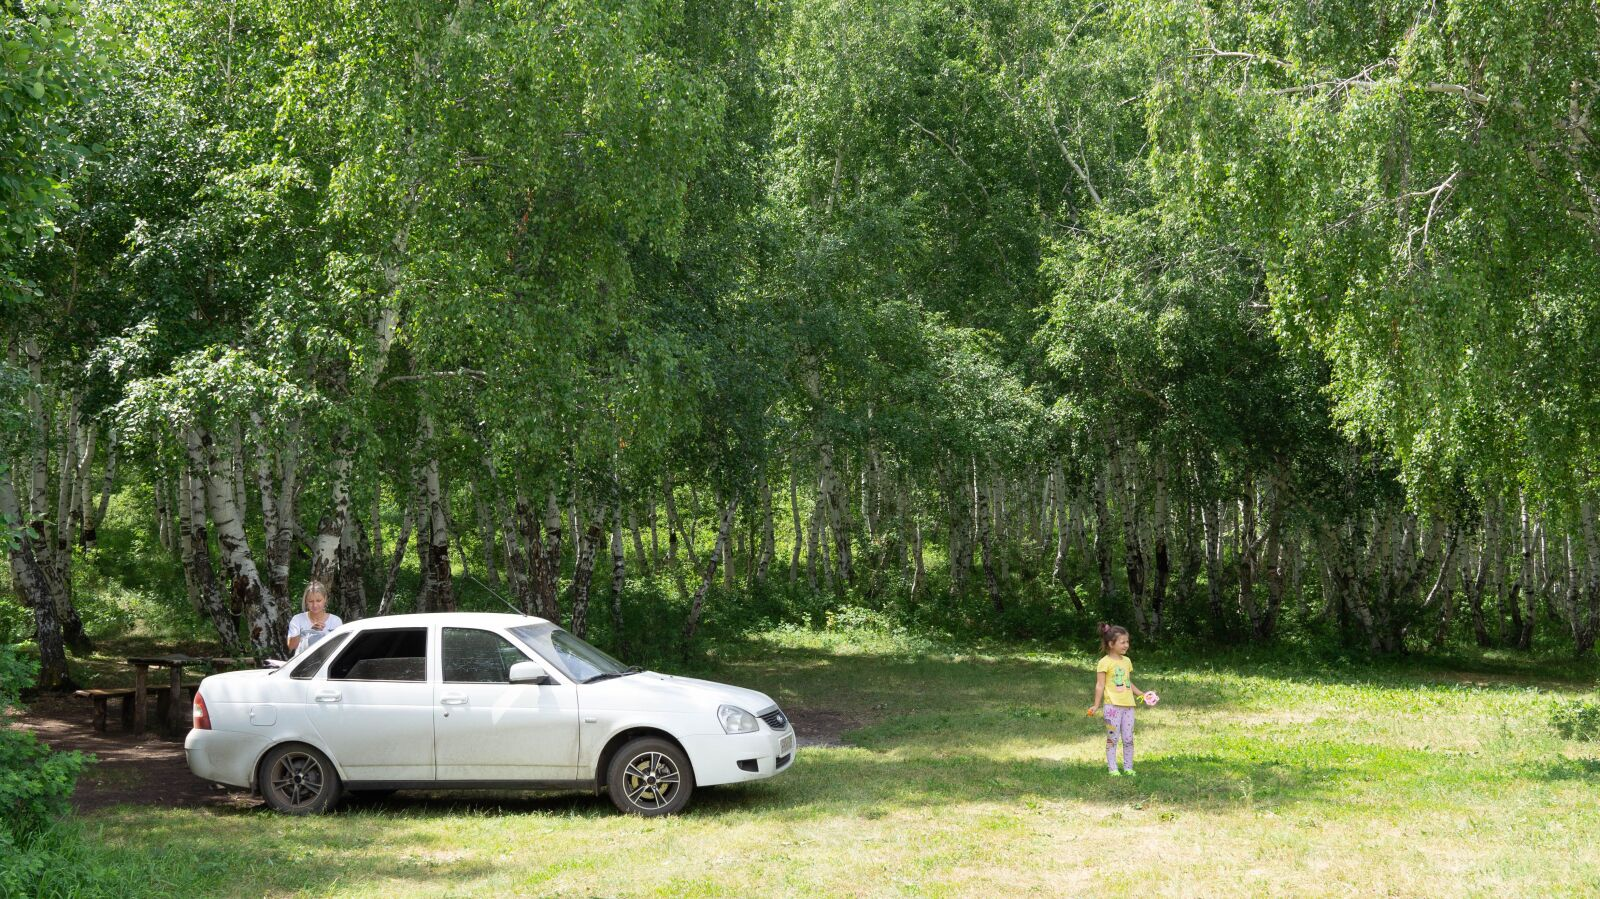 forest, auto, nature